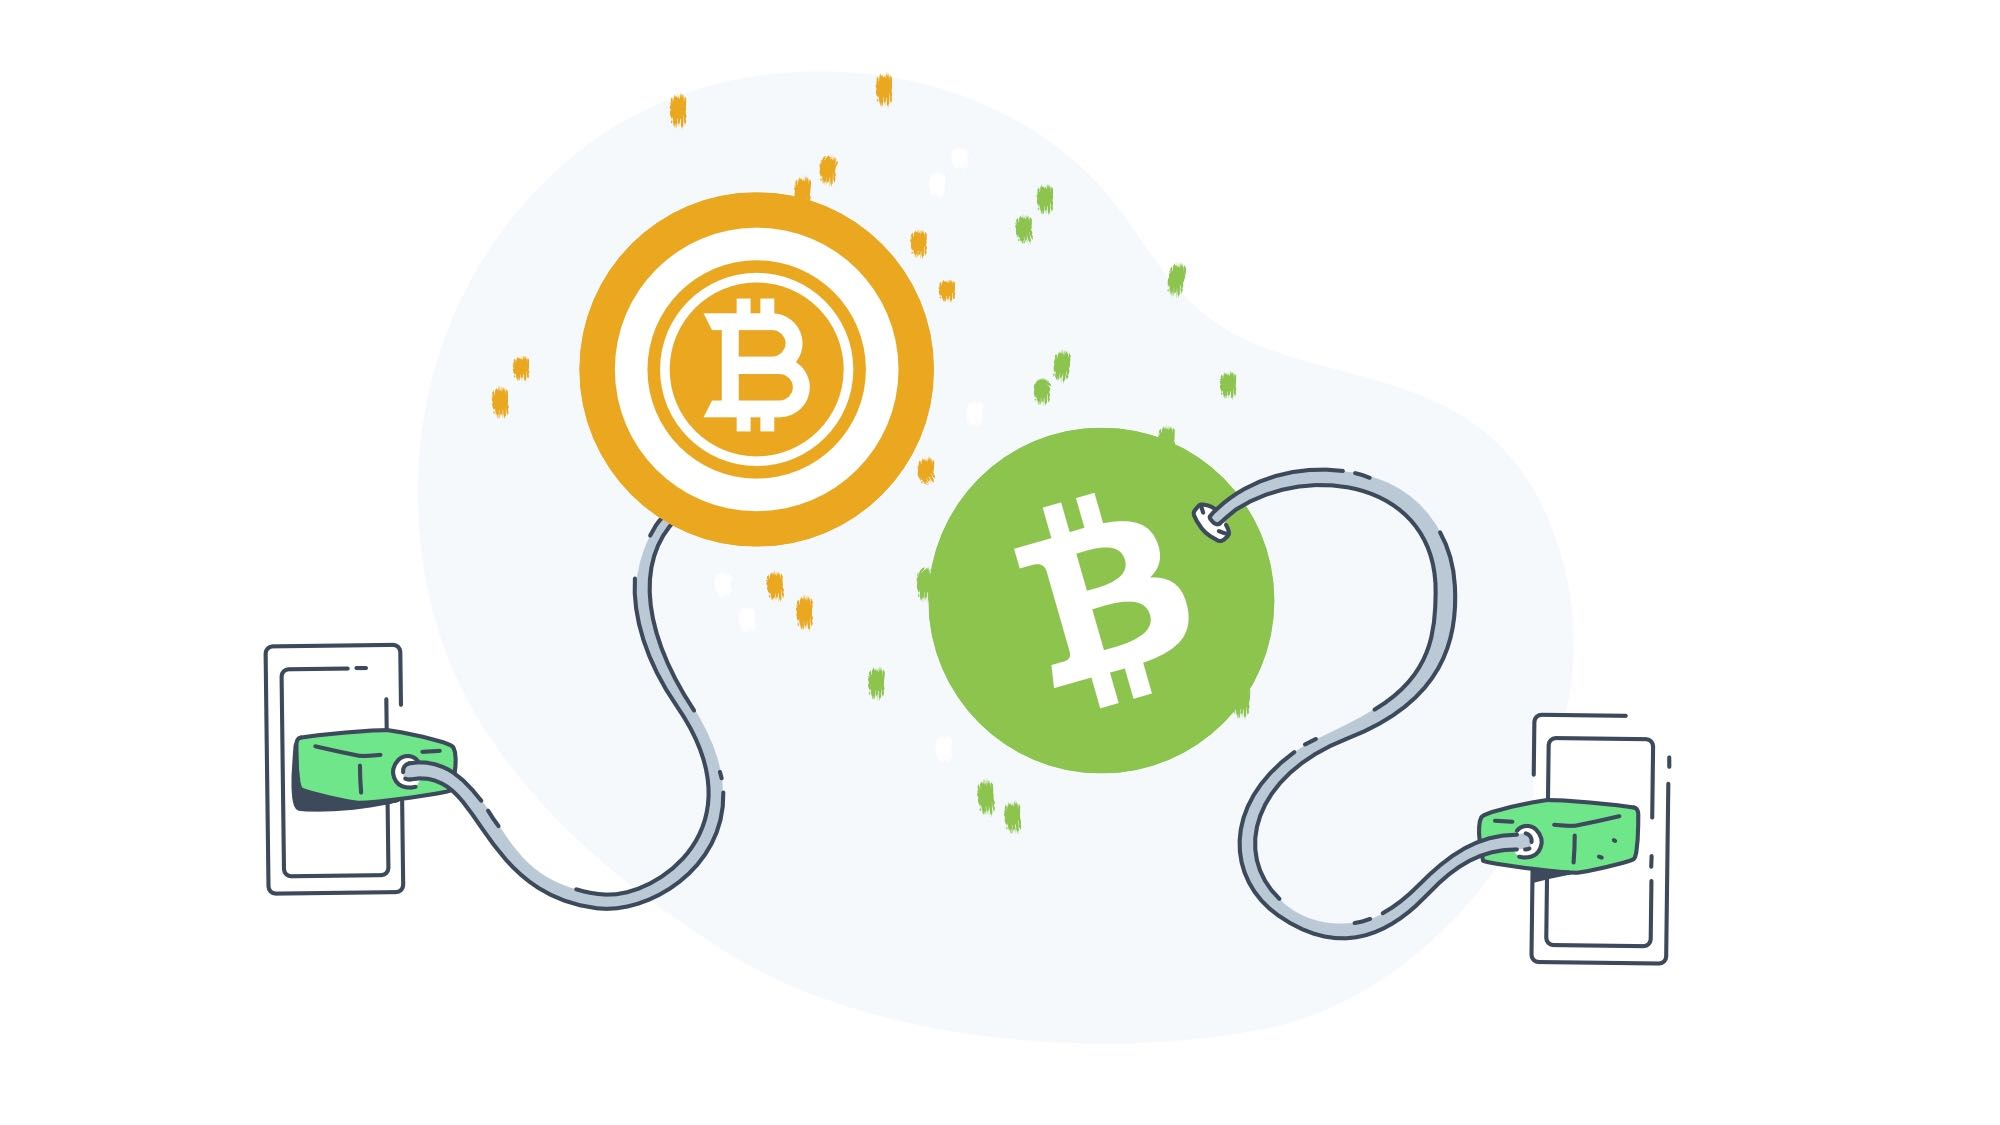 Bitcoin has reached global